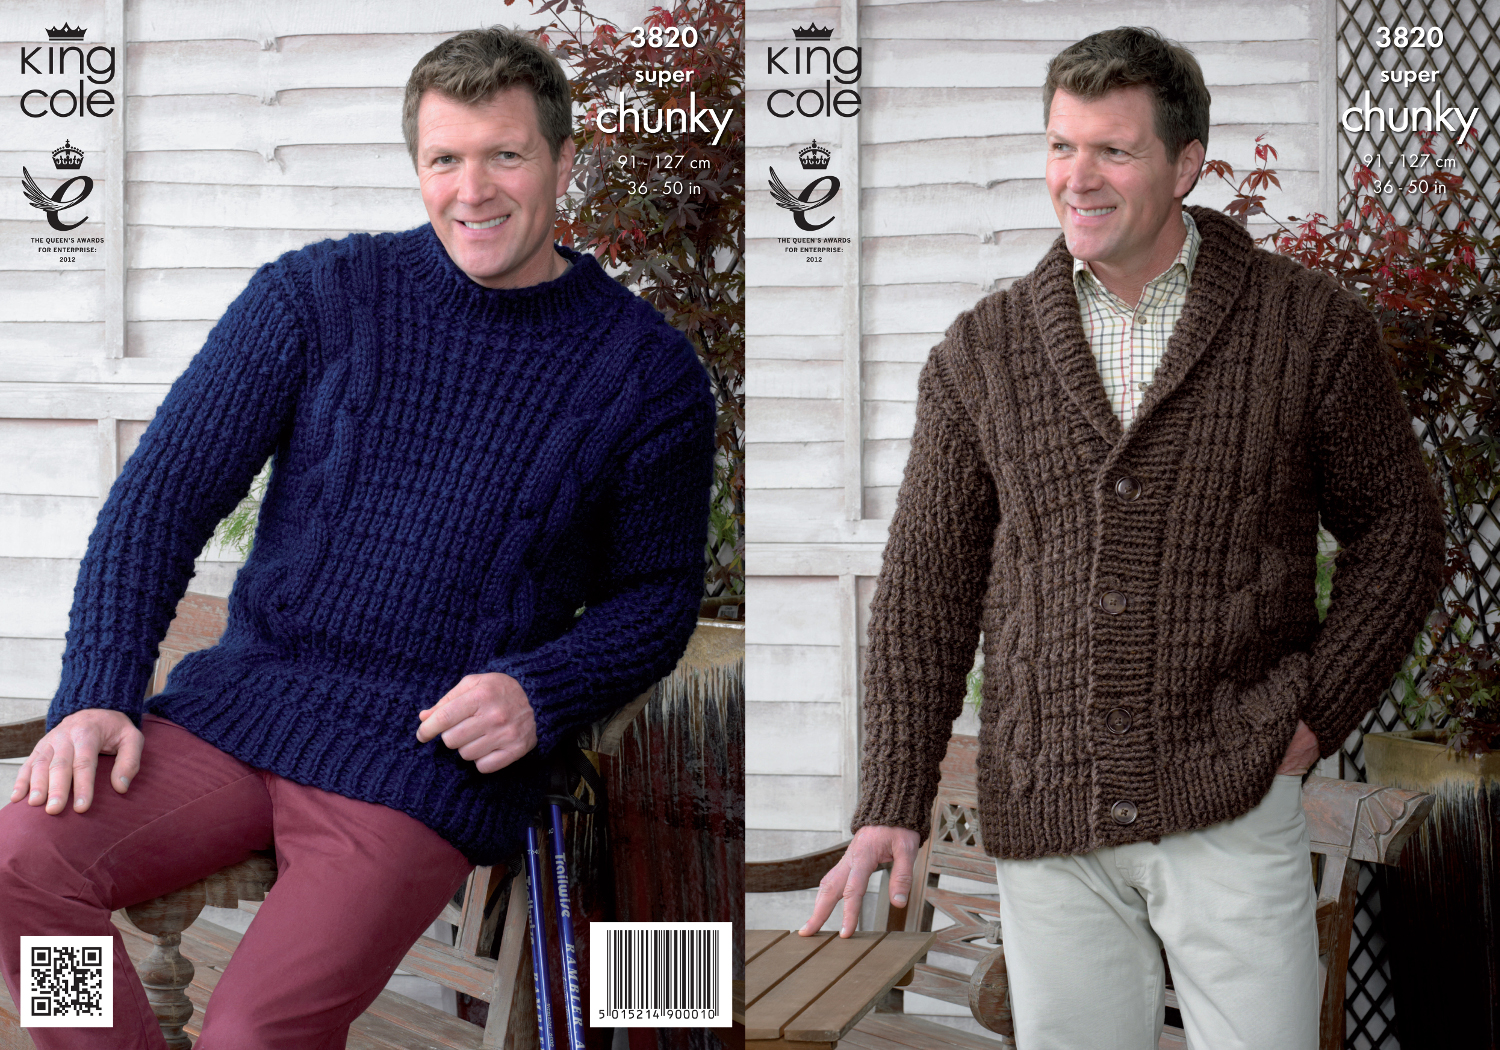 King Cole Mens Knitting Pattern Super Chunky Cable Knit Cardigan ...